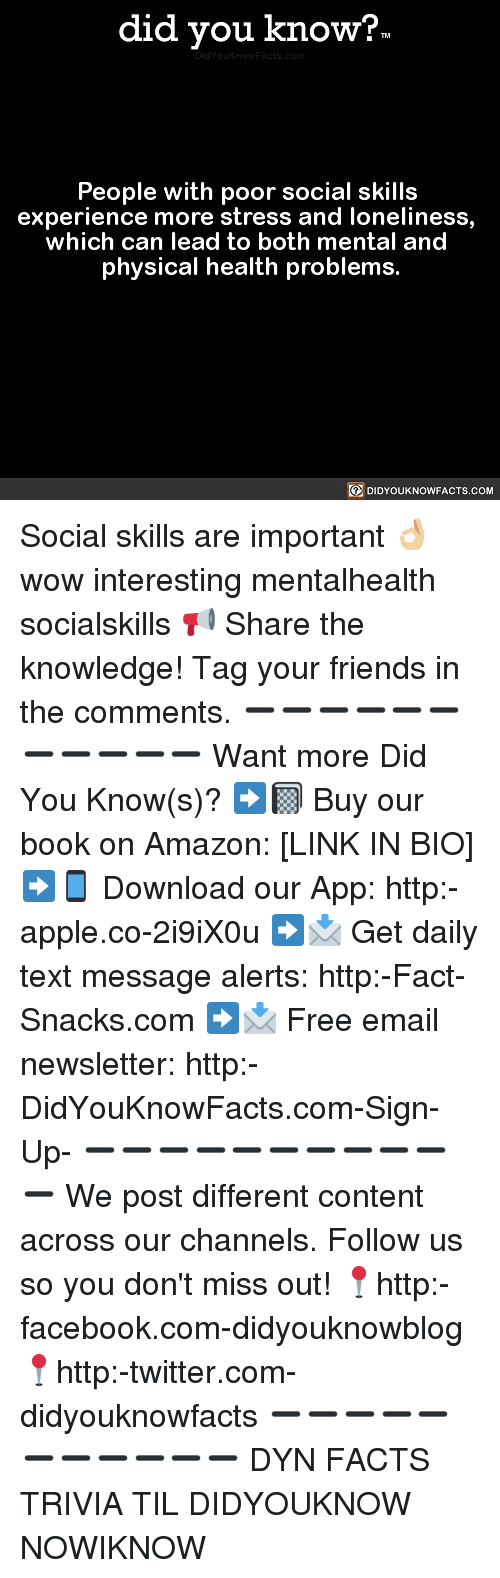 Amazon, Apple, and Facebook: did you know?  People with poor social skills  experience more stress and loneliness,  which can lead to both mental and  physical health problems.  DIDYOUKNOWFACTS.COM Social skills are important 👌🏼 wow interesting mentalhealth socialskills 📢 Share the knowledge! Tag your friends in the comments. ➖➖➖➖➖➖➖➖➖➖➖ Want more Did You Know(s)? ➡📓 Buy our book on Amazon: [LINK IN BIO] ➡📱 Download our App: http:-apple.co-2i9iX0u ➡📩 Get daily text message alerts: http:-Fact-Snacks.com ➡📩 Free email newsletter: http:-DidYouKnowFacts.com-Sign-Up- ➖➖➖➖➖➖➖➖➖➖➖ We post different content across our channels. Follow us so you don't miss out! 📍http:-facebook.com-didyouknowblog 📍http:-twitter.com-didyouknowfacts ➖➖➖➖➖➖➖➖➖➖➖ DYN FACTS TRIVIA TIL DIDYOUKNOW NOWIKNOW